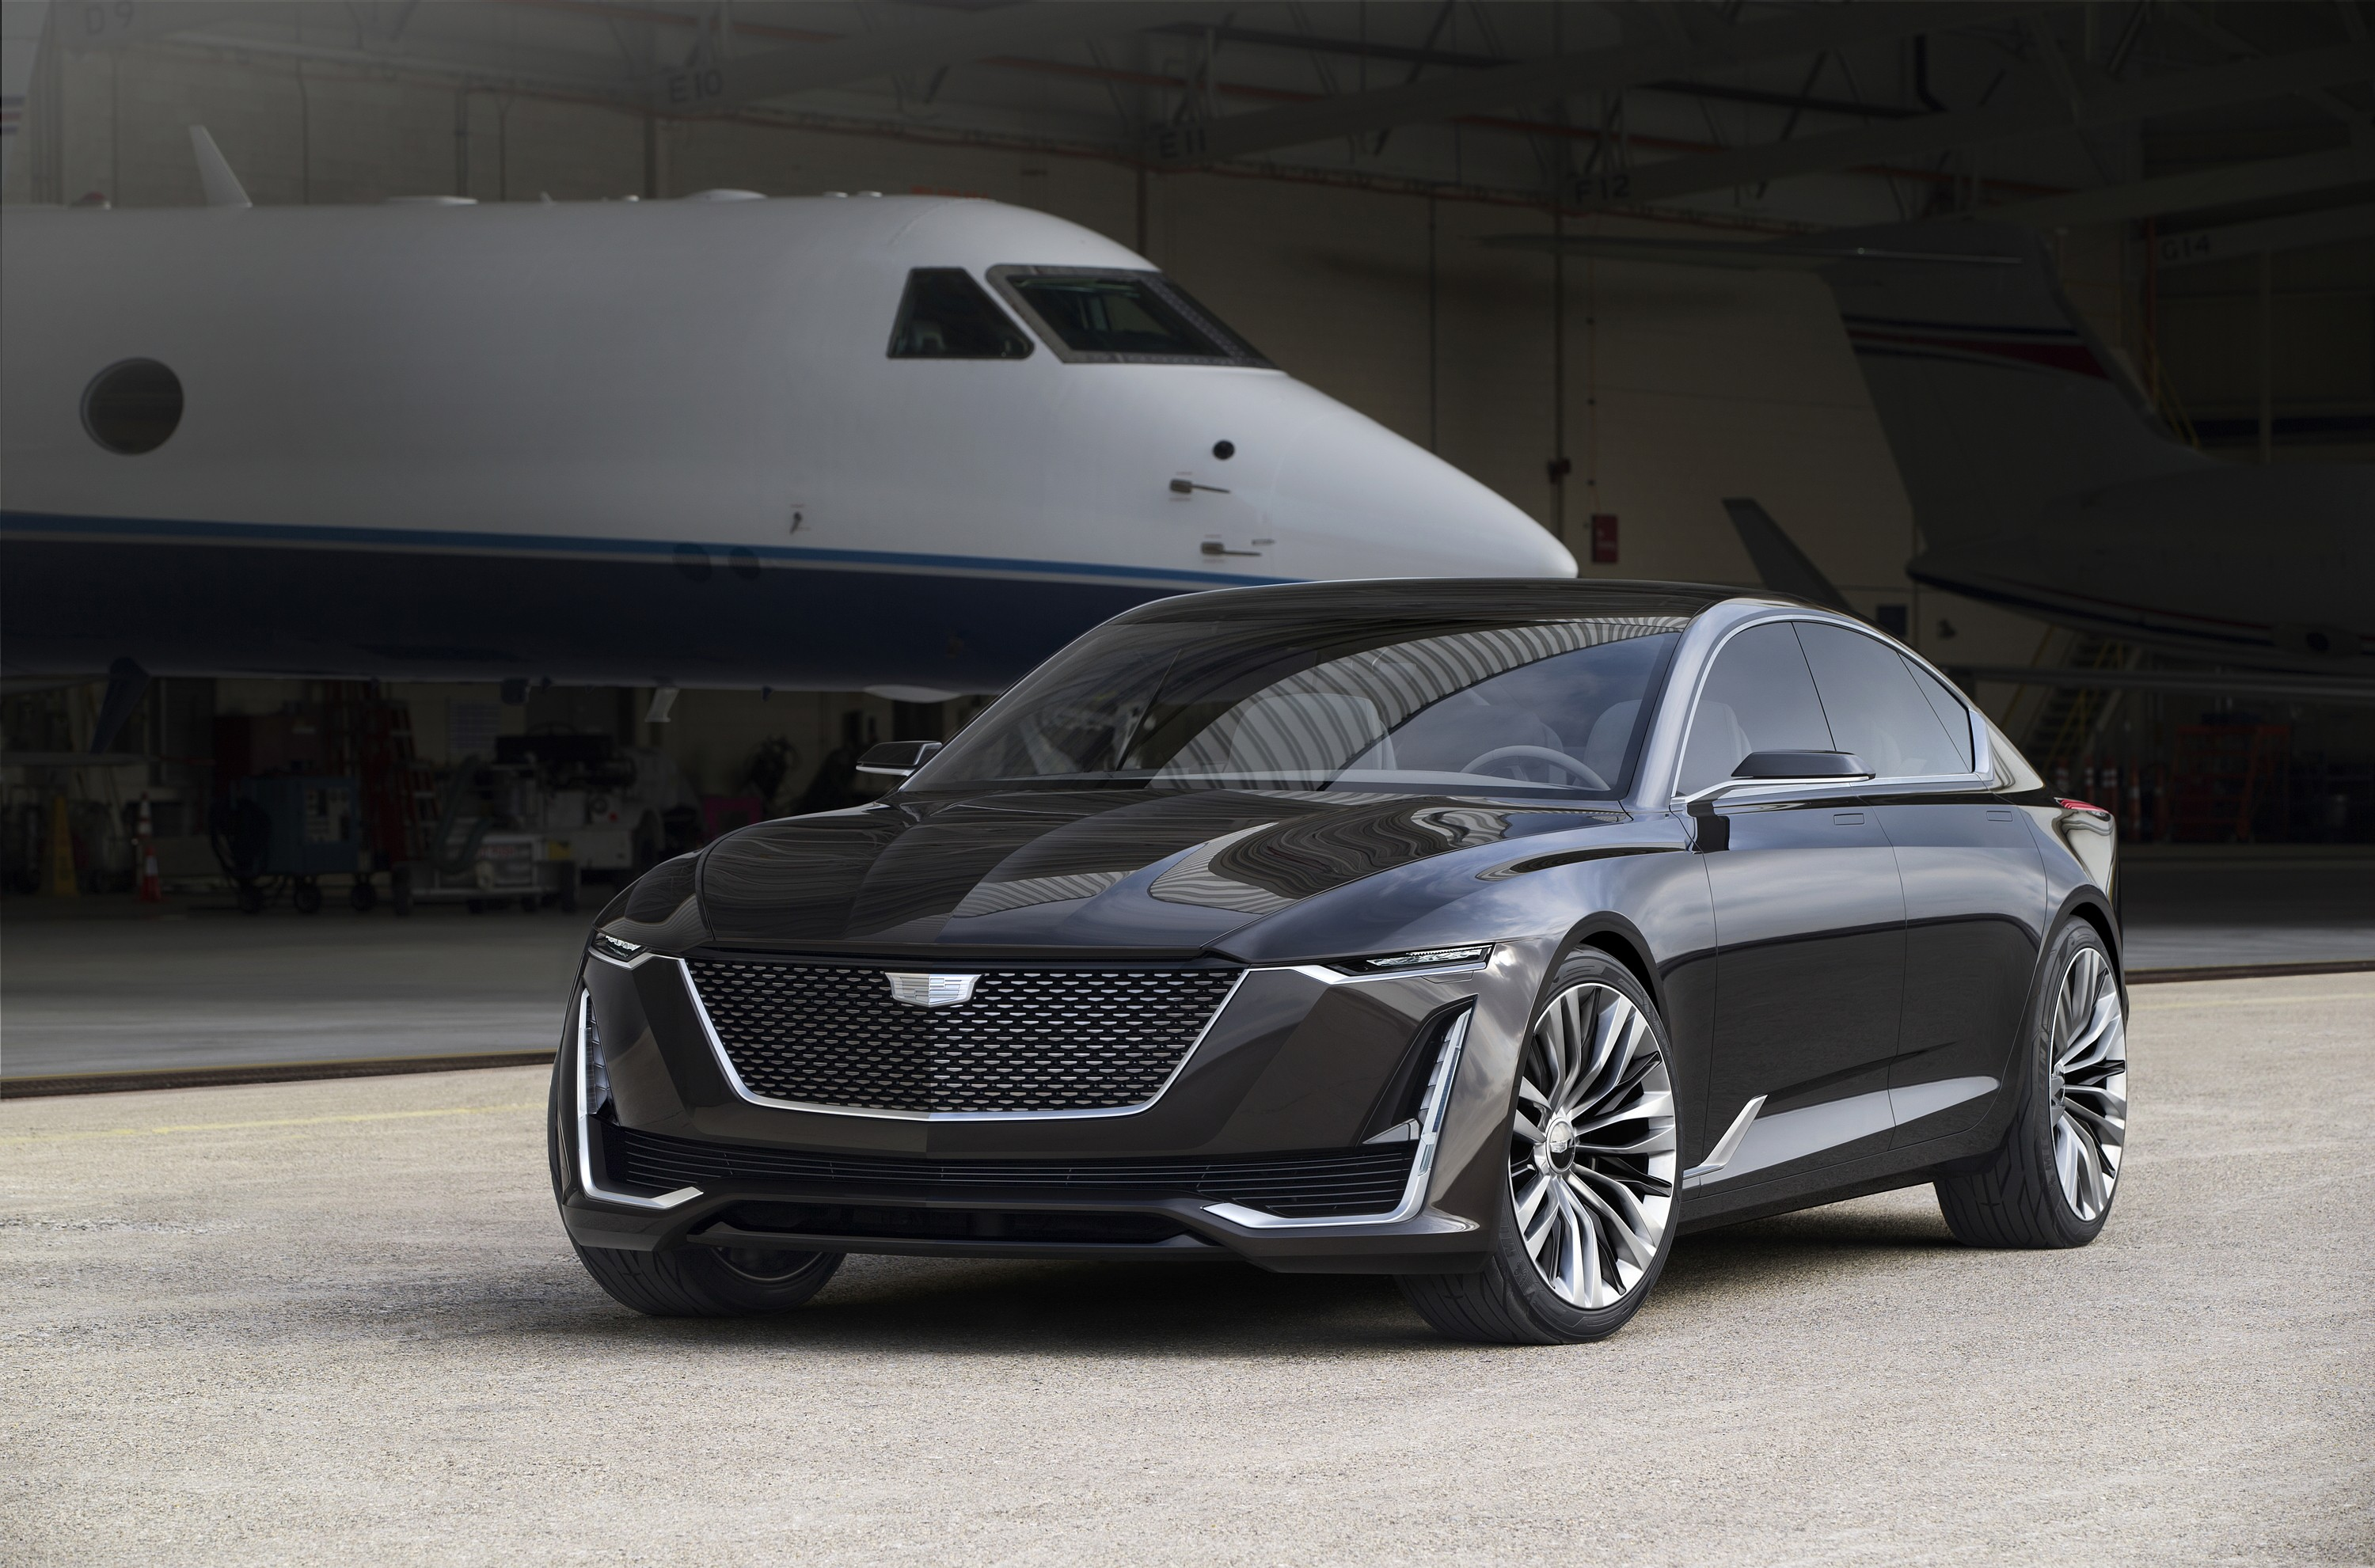 Cadillac Ats Coupe >> 2020 Cadillac CT5 Sedan Will Replace ATS, CTS, XTS - autoevolution